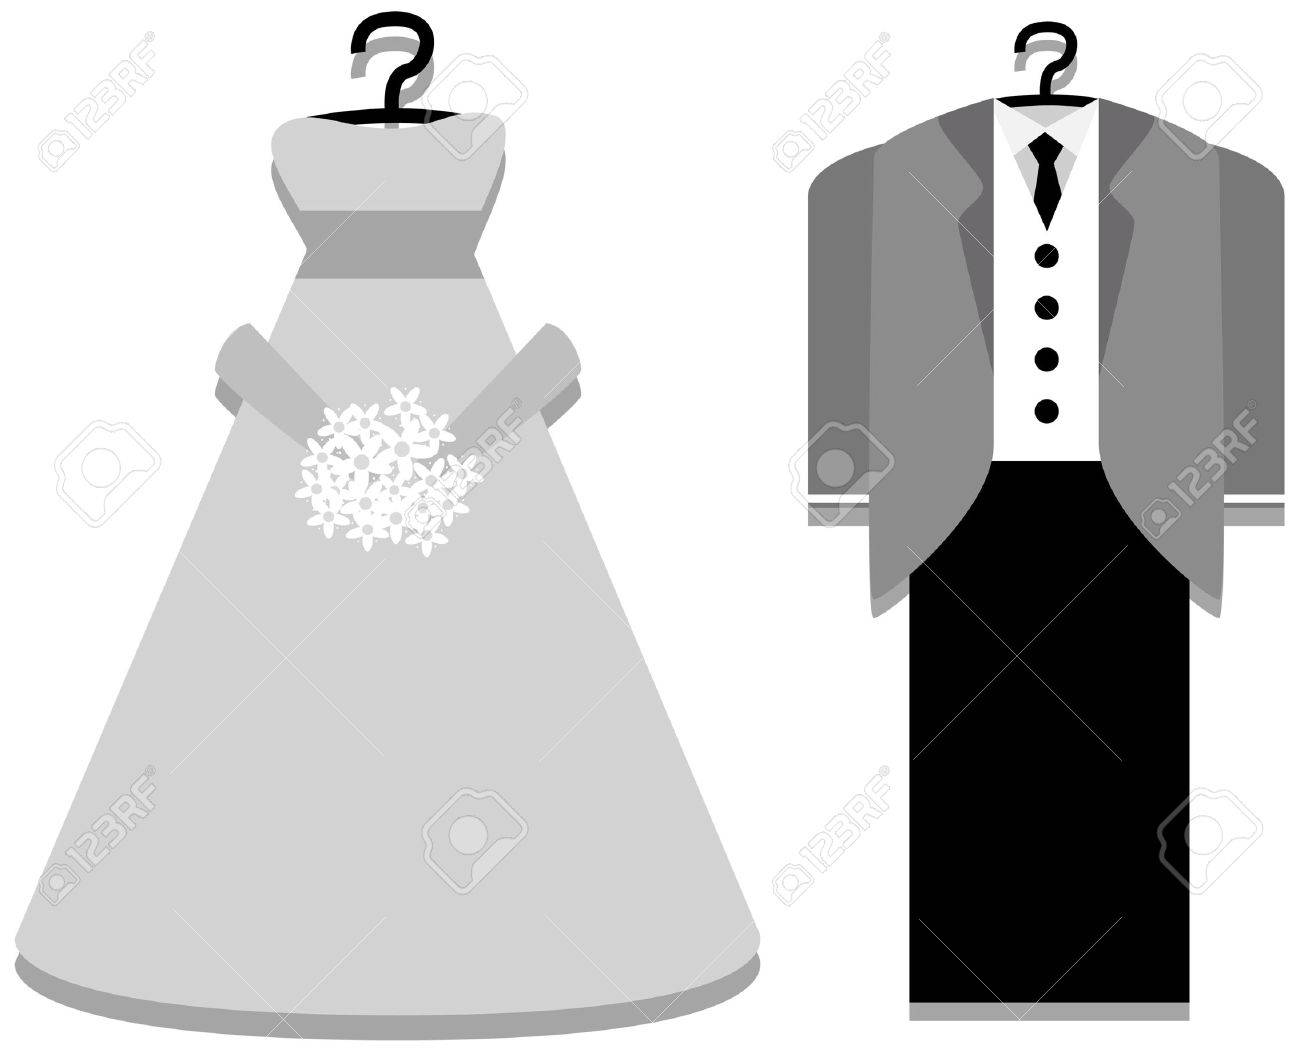 Bridal Gown And Tuxedo With Clipping Path Royalty Free Cliparts ...